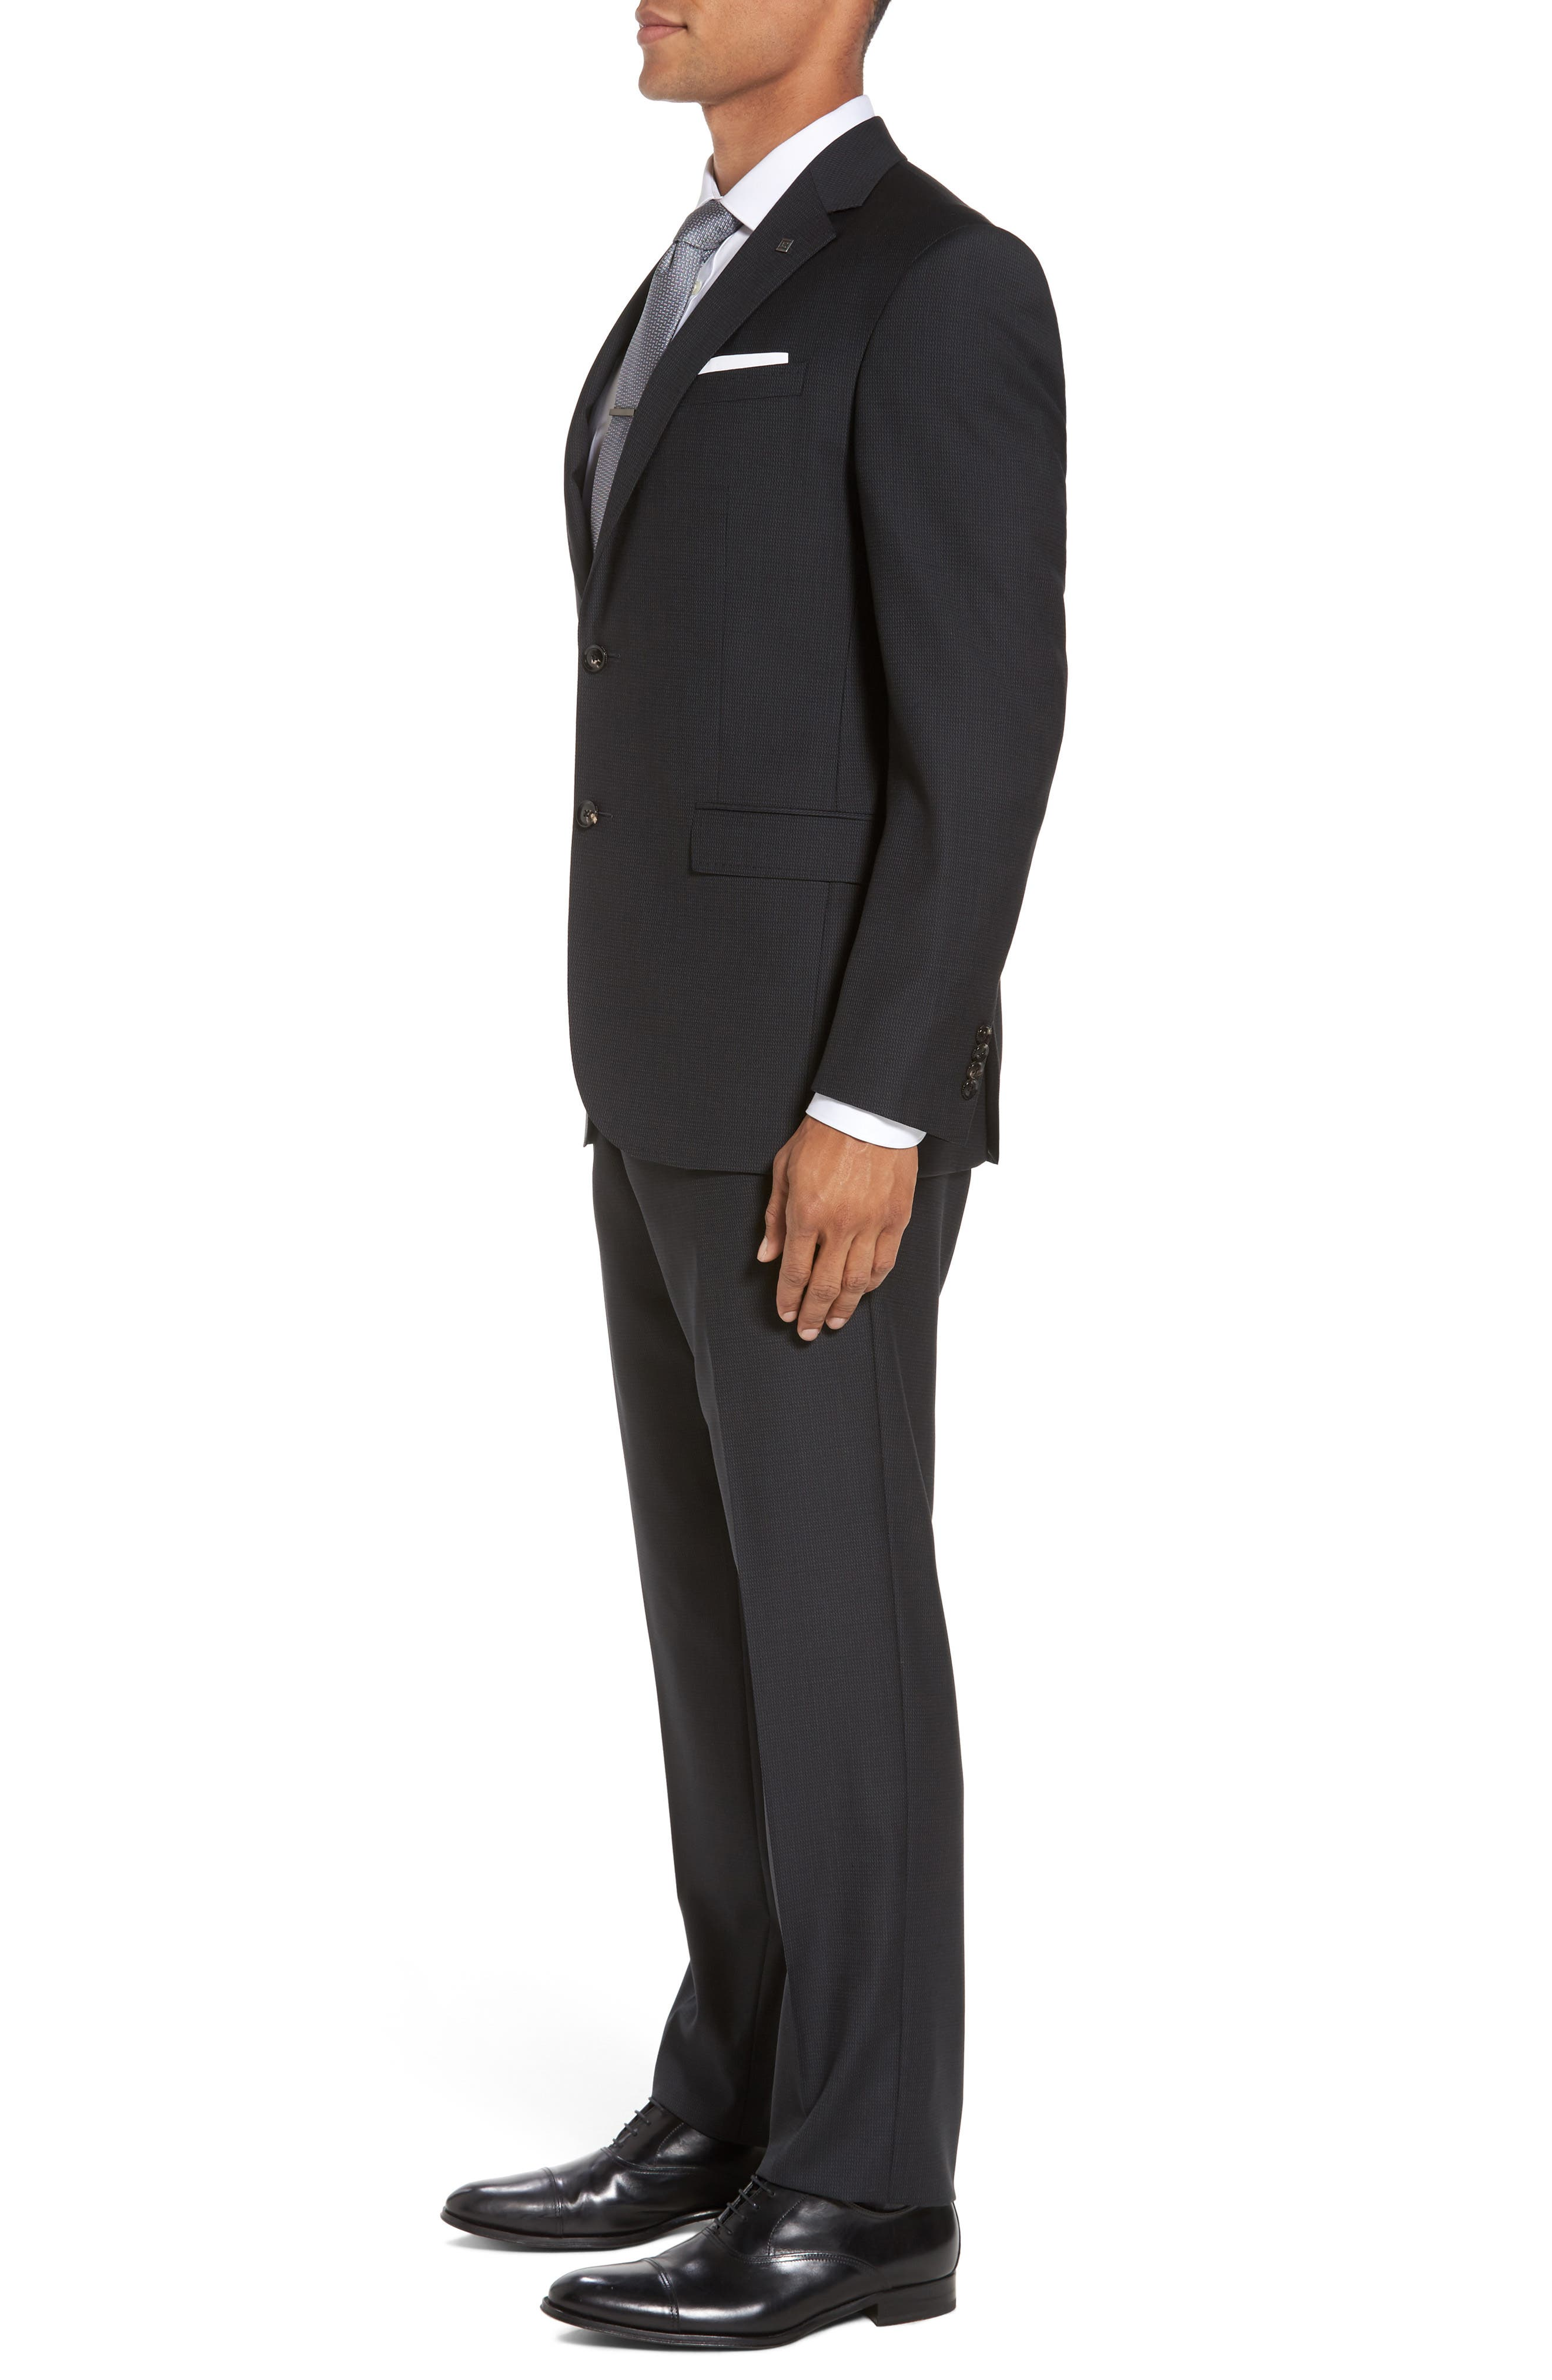 Jay Trim Fit Solid Wool Suit,                             Alternate thumbnail 3, color,                             Black Charcoal